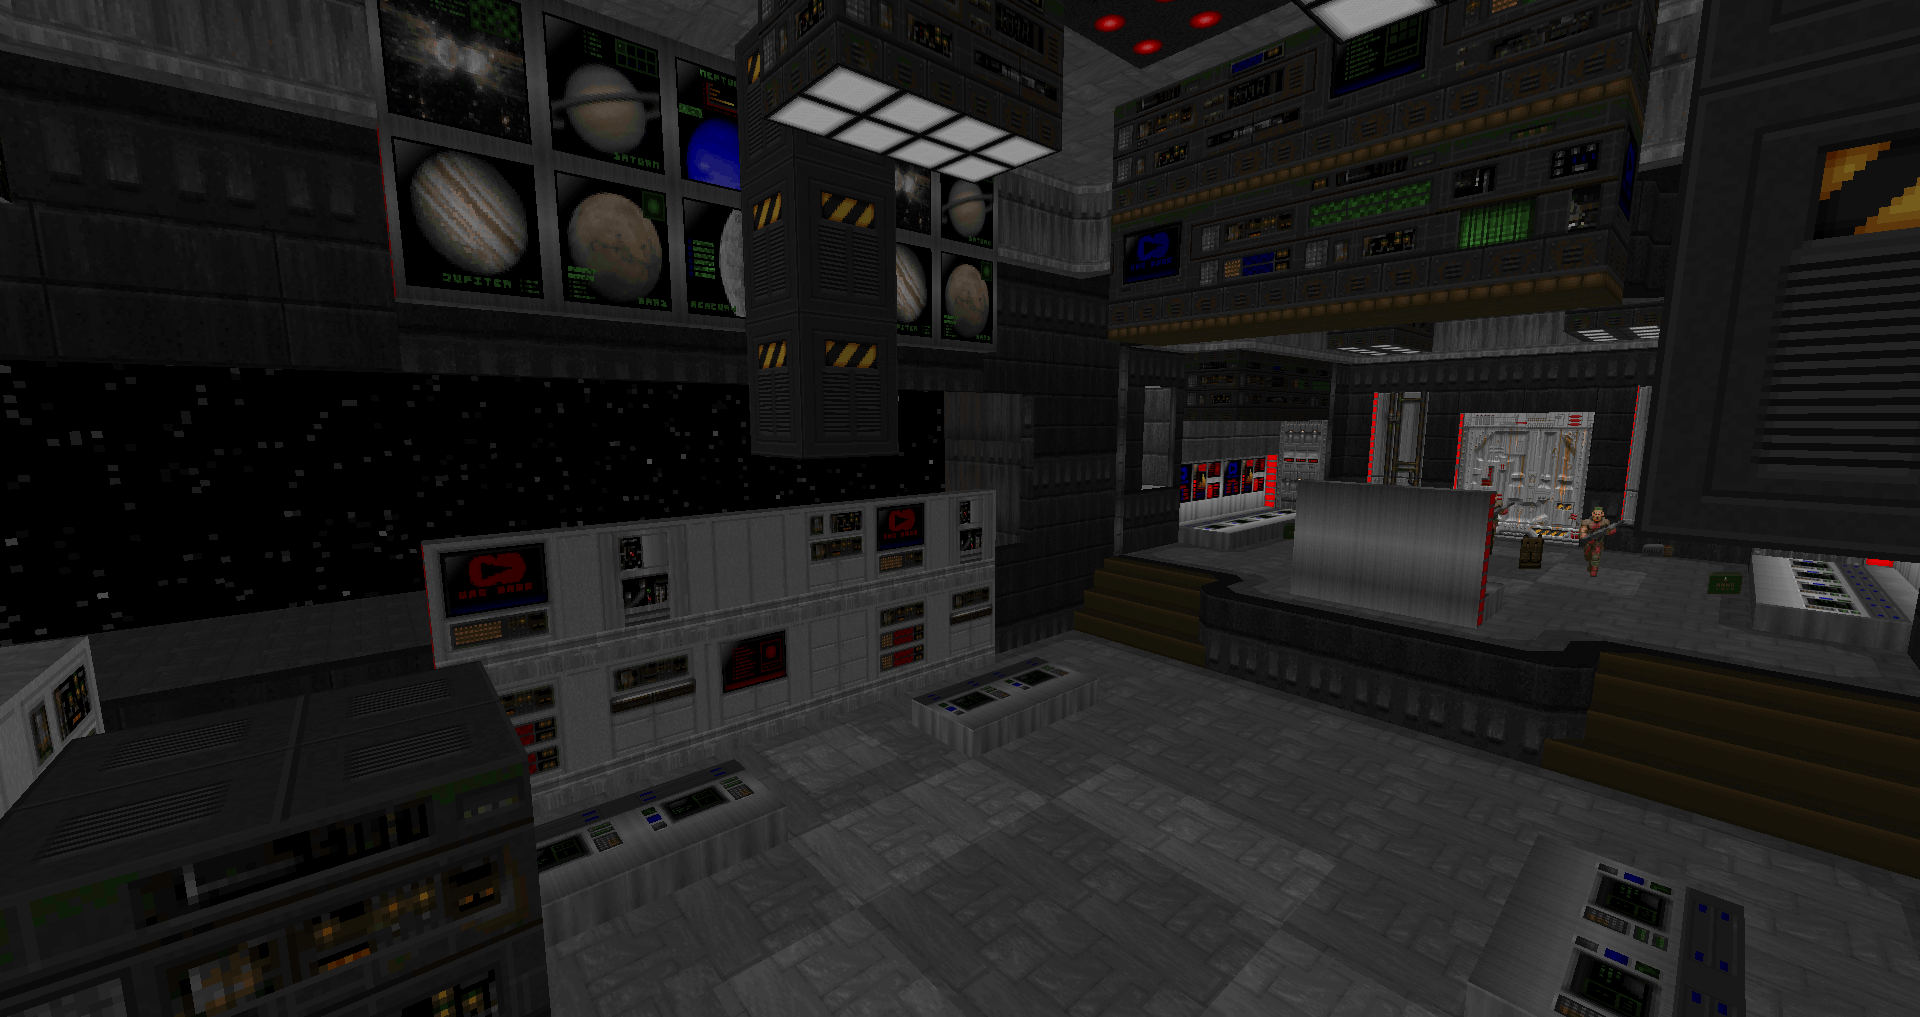 Screenshot_Doom_20200515_171137.png.94722a028dd283614d408066a7f74ac3.png